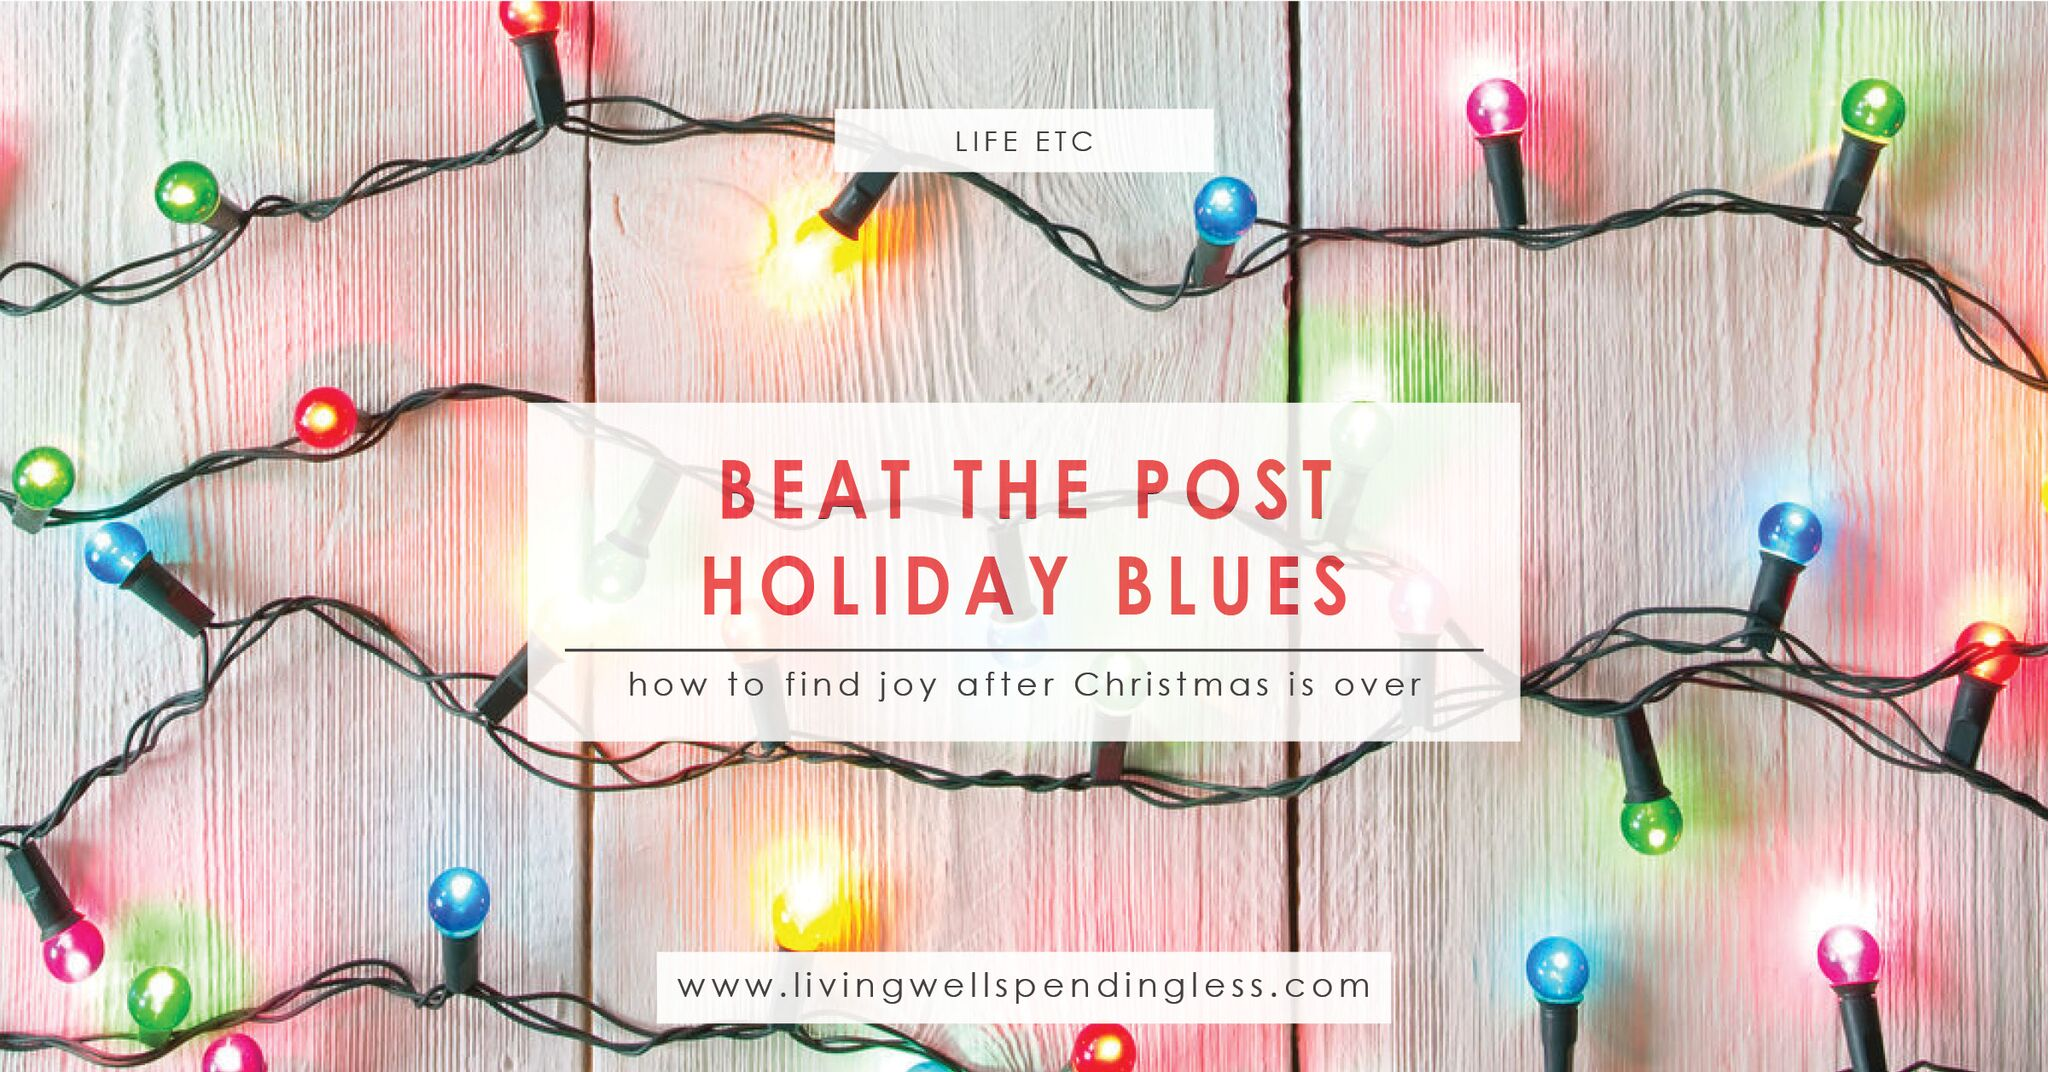 beat the post holiday blues5 ways to find joy after christmas - After Christmas Blues